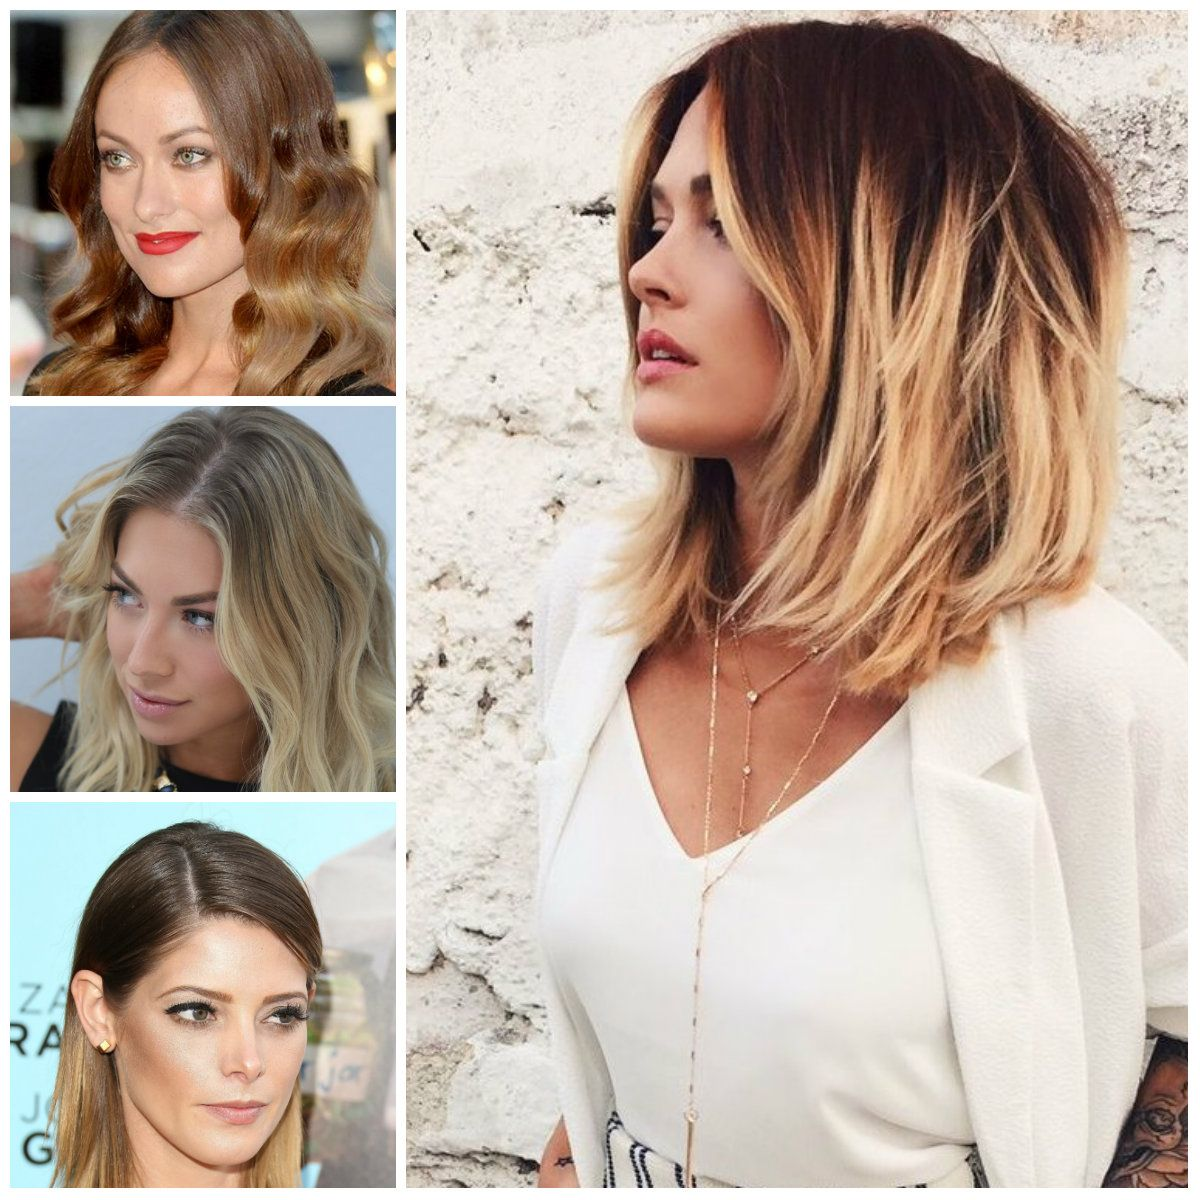 Hairstyles 2016 dark hair - 2016 Trendy Ombre Hair Colors For Midlength Haircuts 2016 Hairstyles And Hair Color Trends